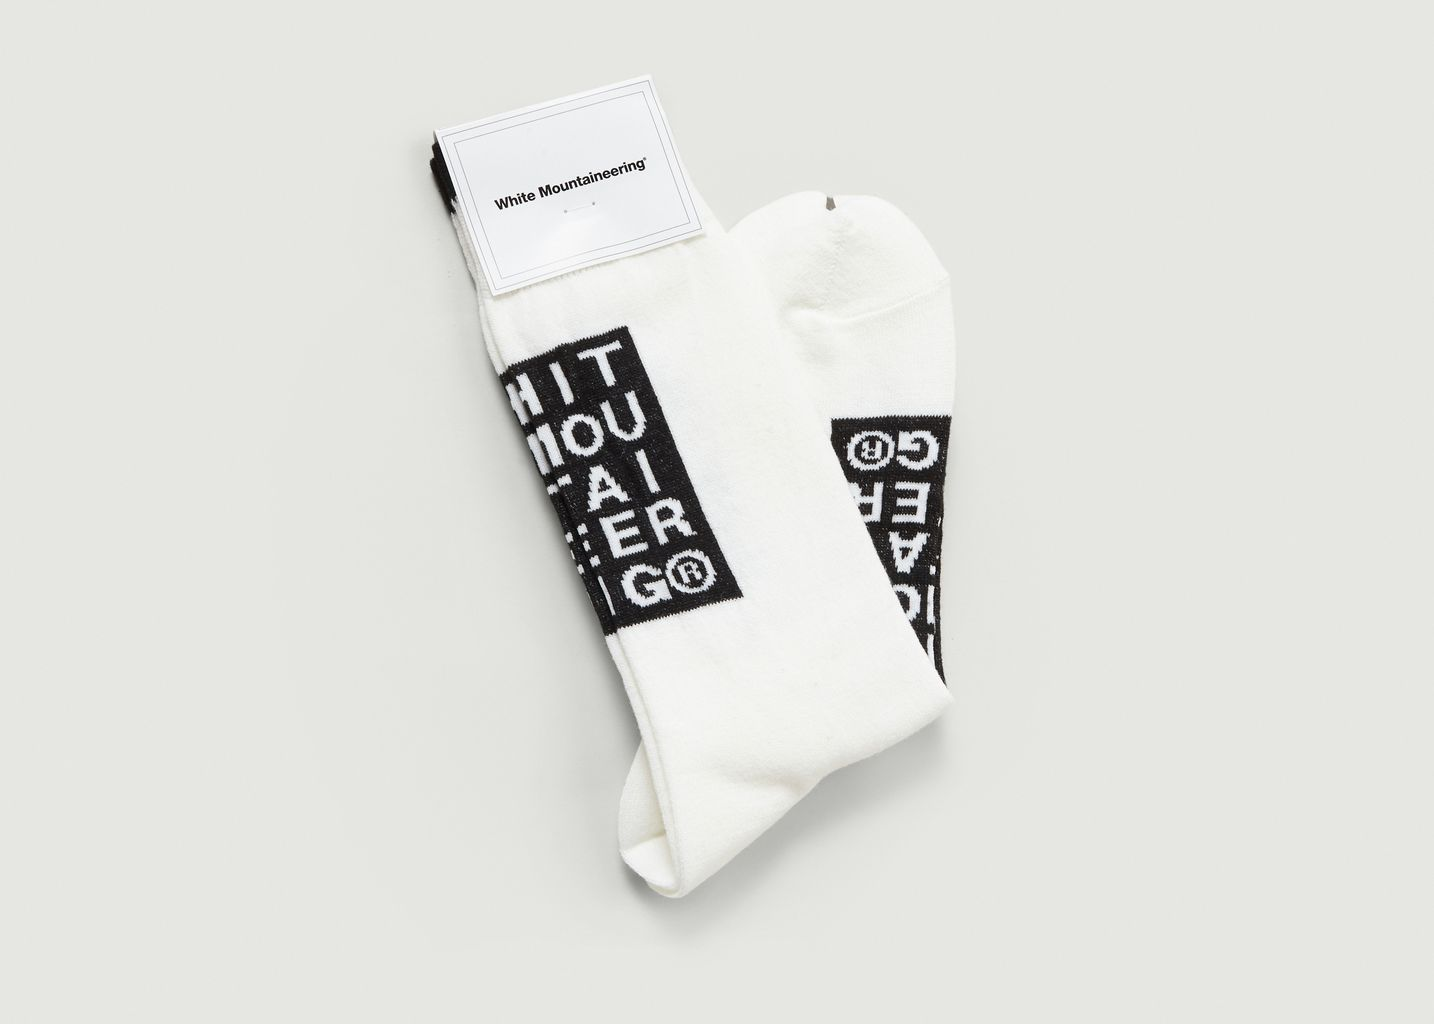 Chaussettes Logotypées - White Mountaineering